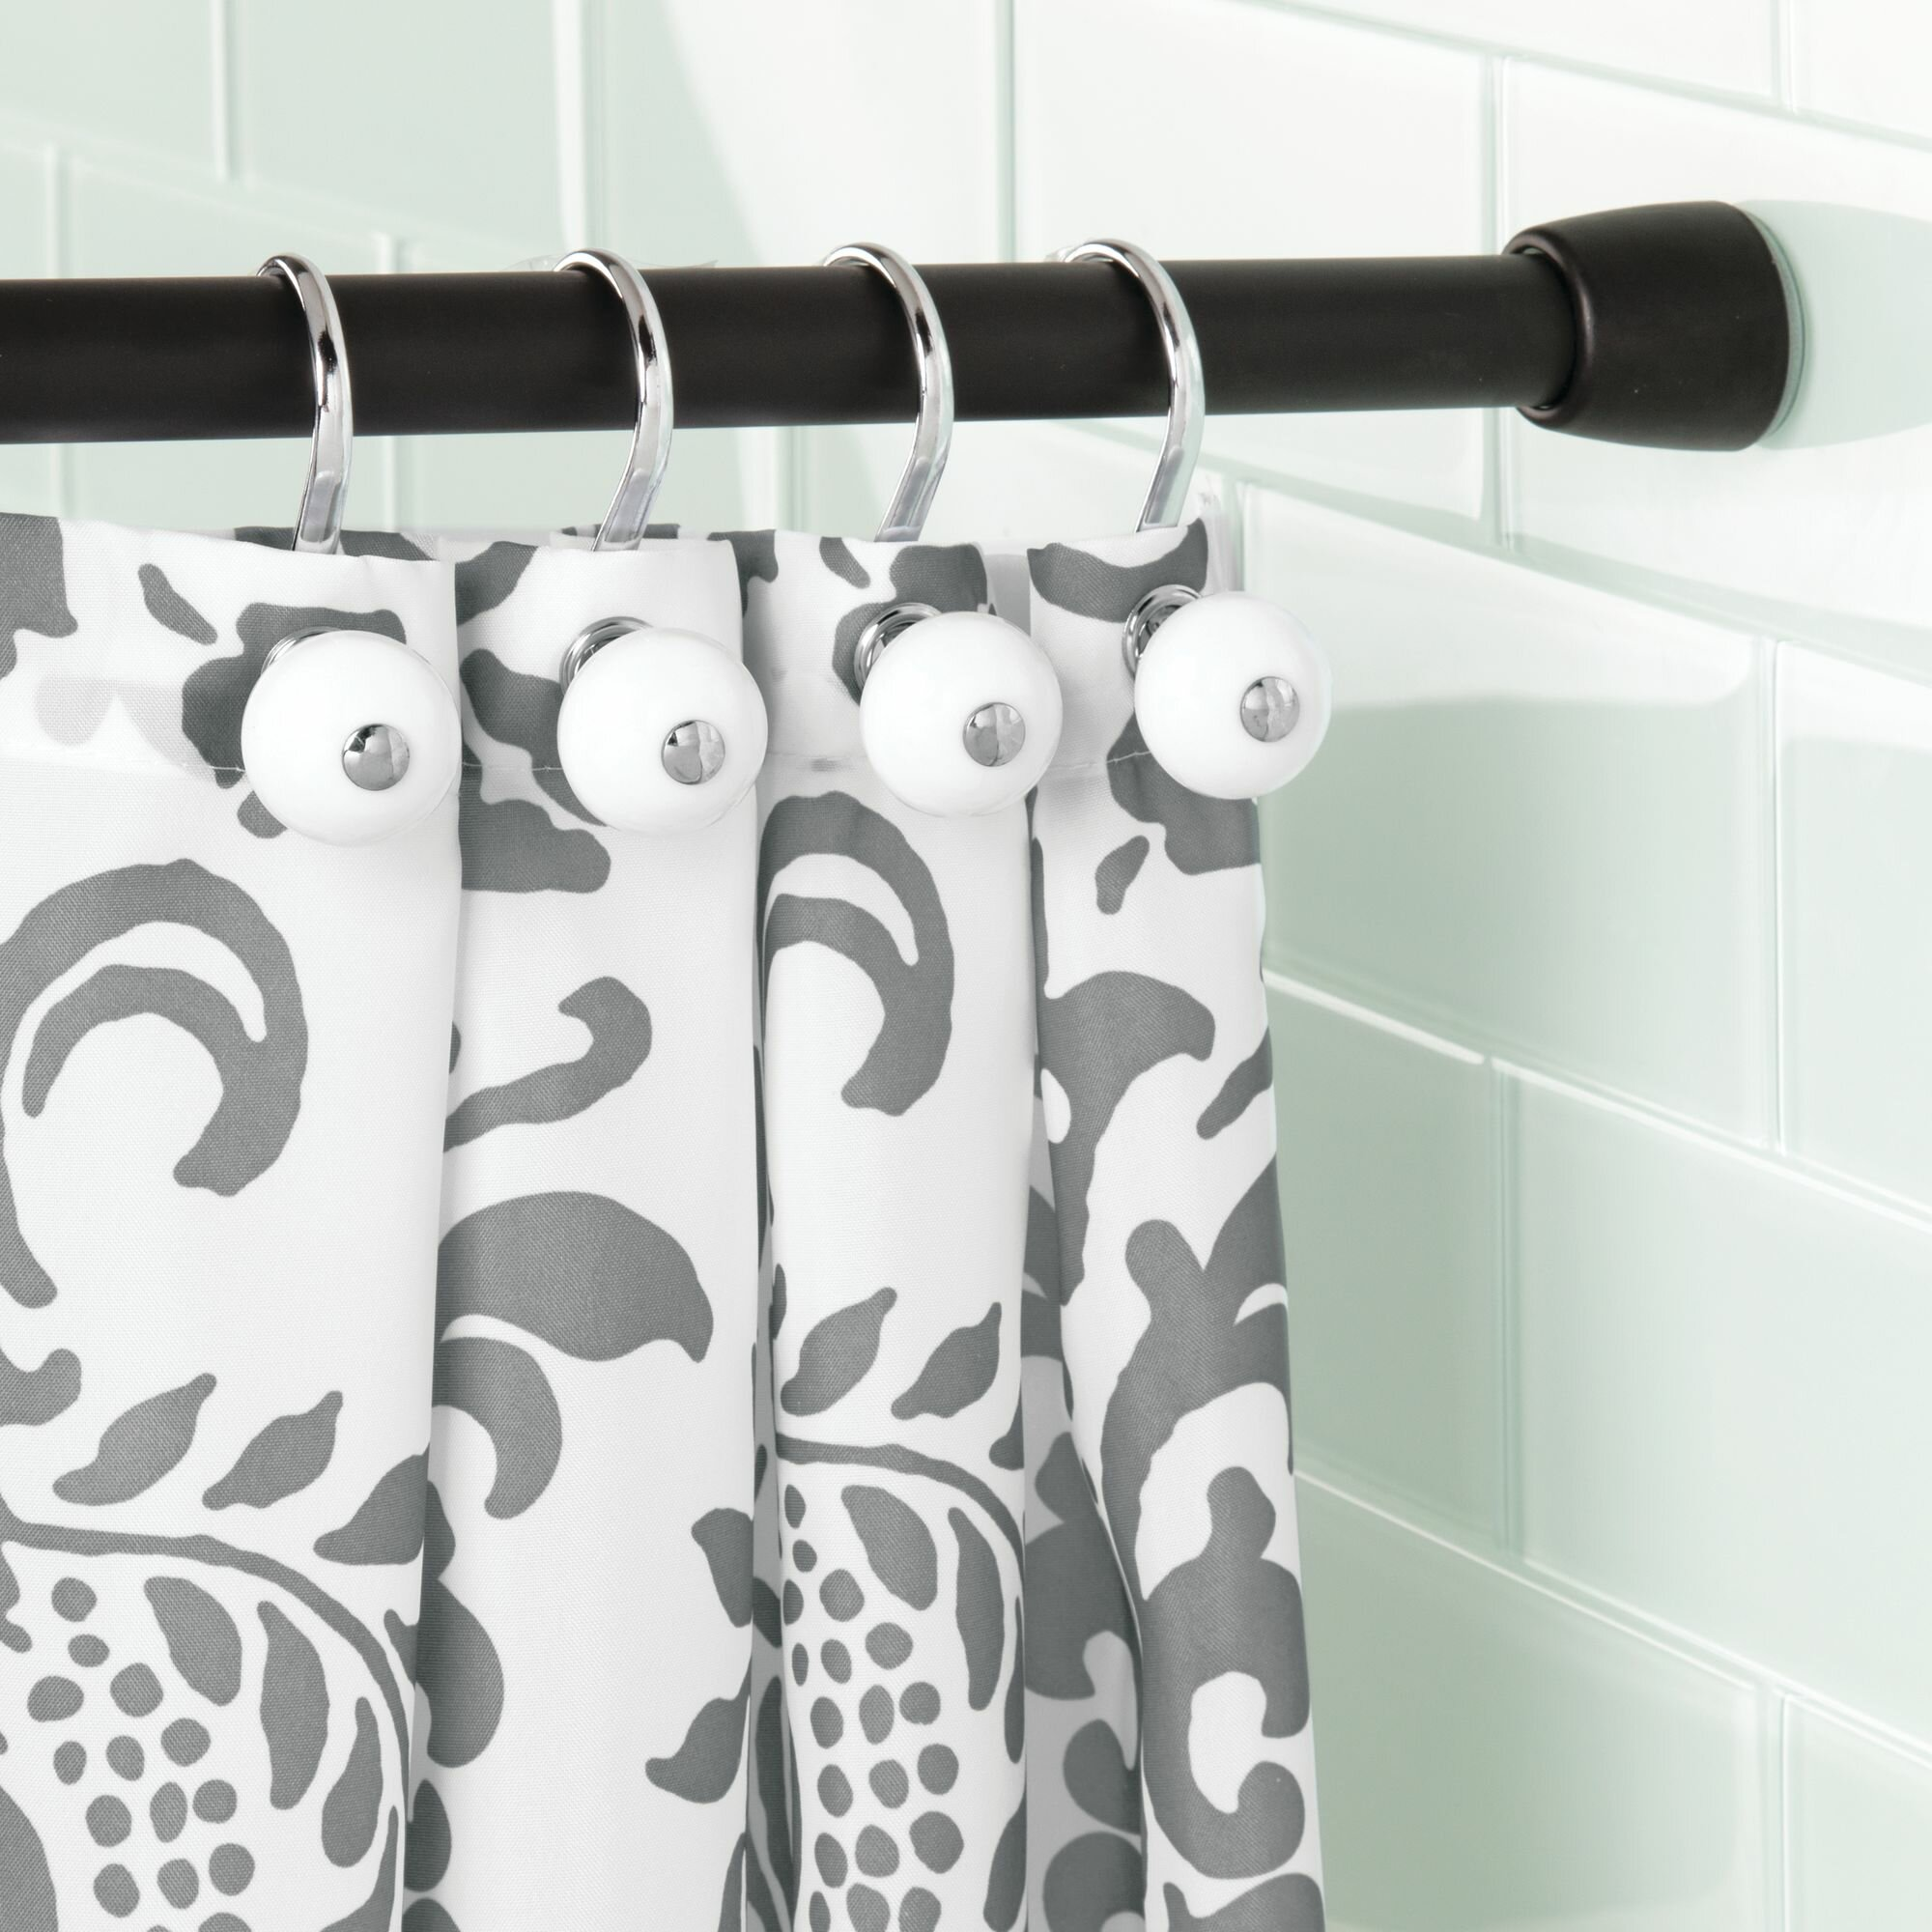 Proulx 26 3 Adjustable Straight Tension Shower Curtain Rod